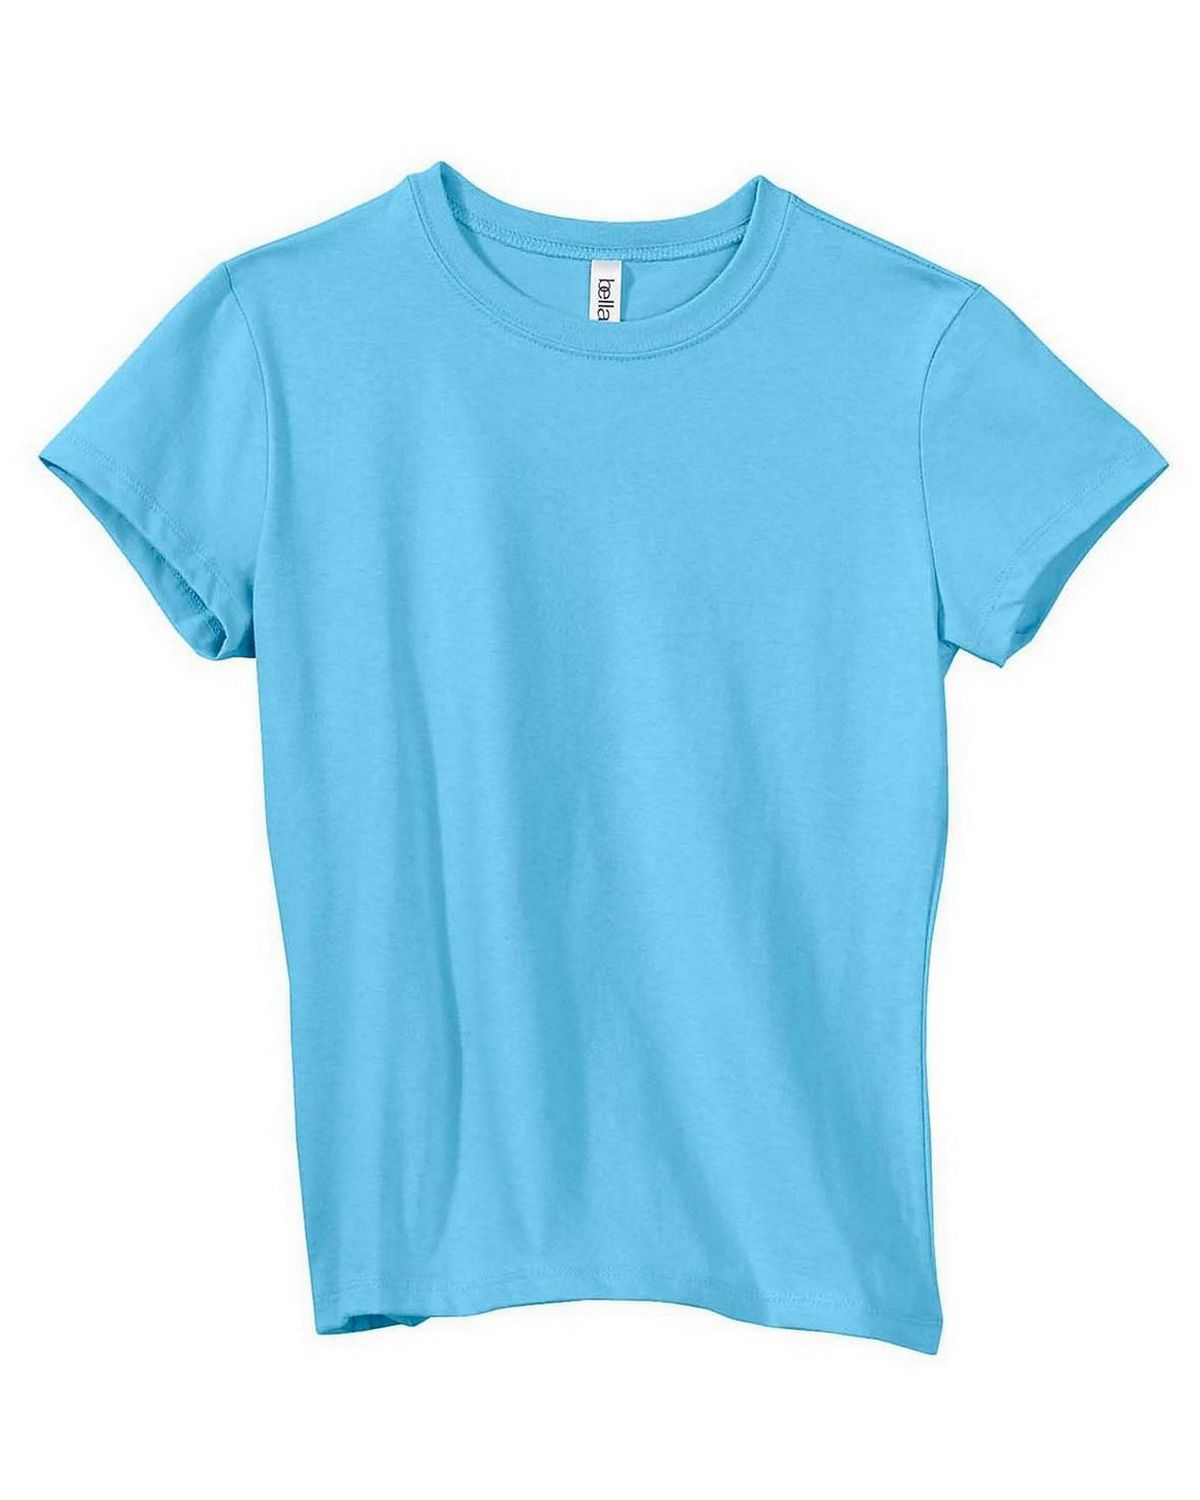 Bella + Canvas 6000 Ladies Jersey T-Shirt - Light Aqua - XL 6000